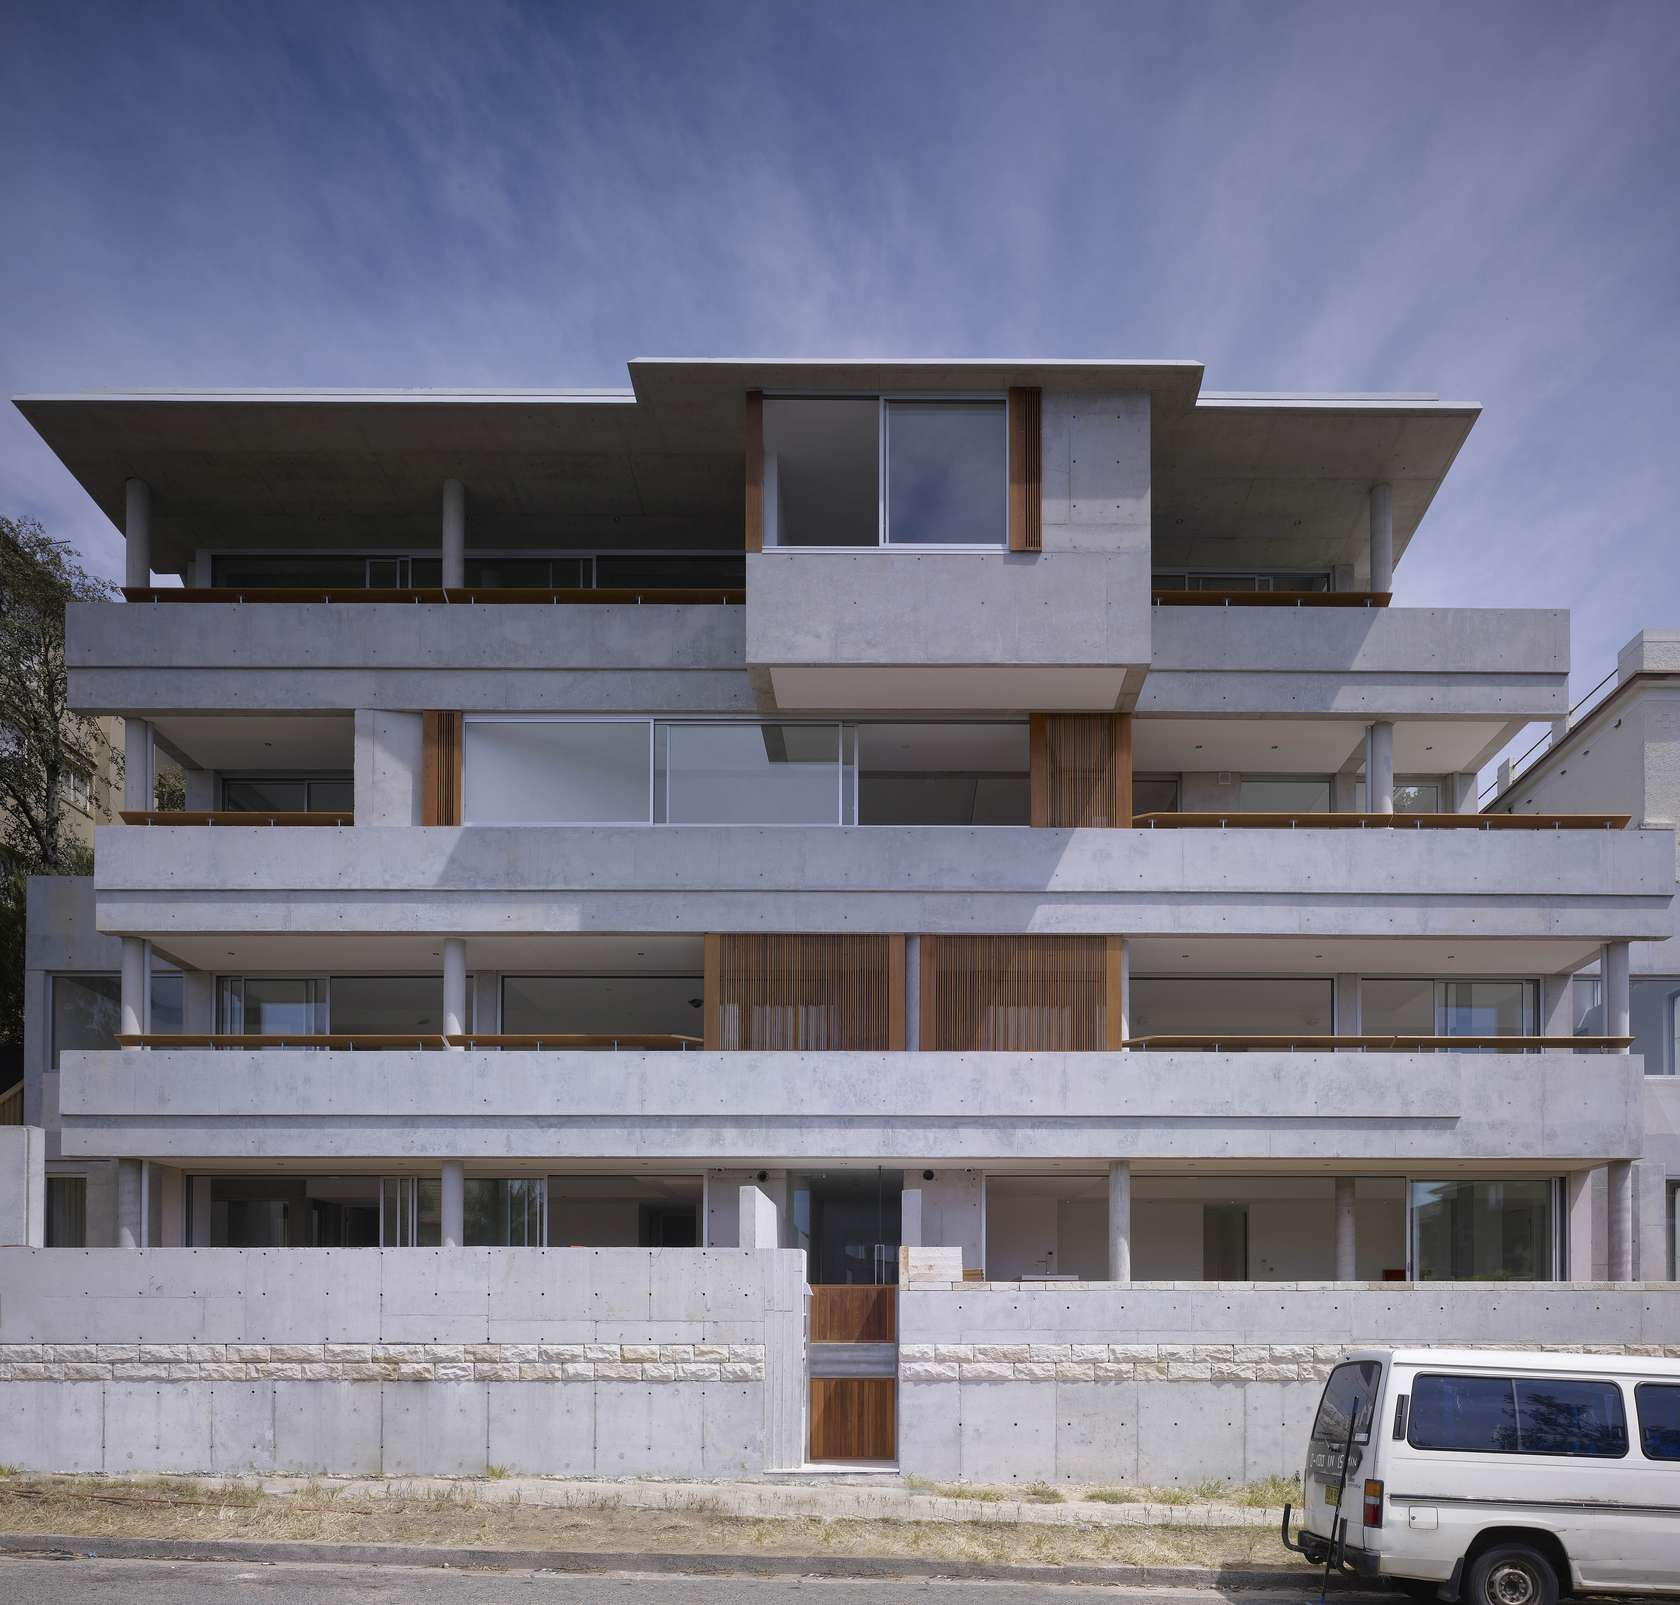 Cook Street Apartments: The Building Is Comprised Of Six Apartments Over Three